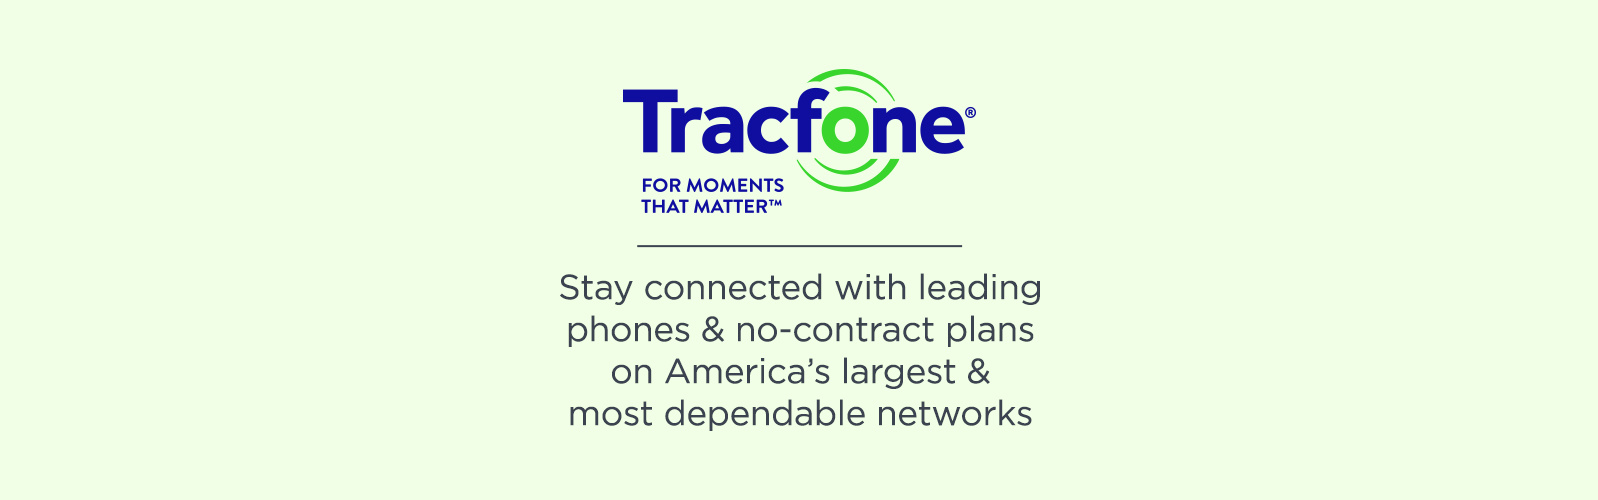 TracFone For Moments That Matter,  Stay connected with leading phones & no-contract plans on America's largest & most dependable networks